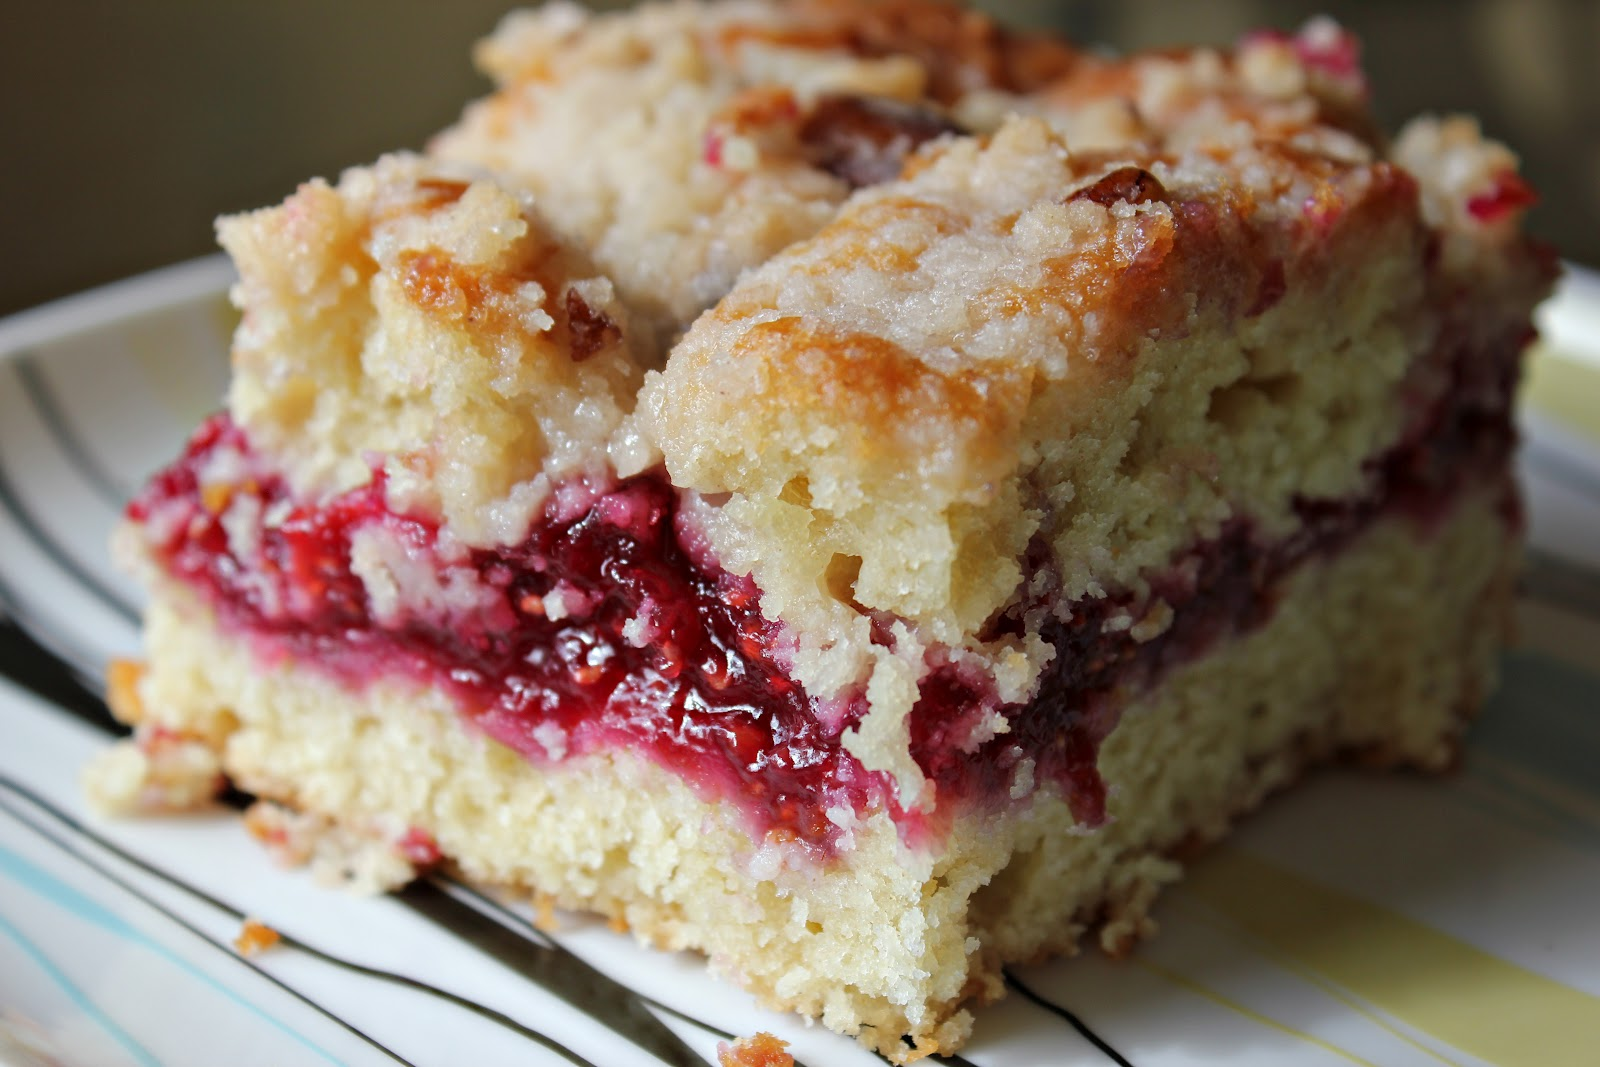 LADDitude: Raspberry Streusel Coffee Cake